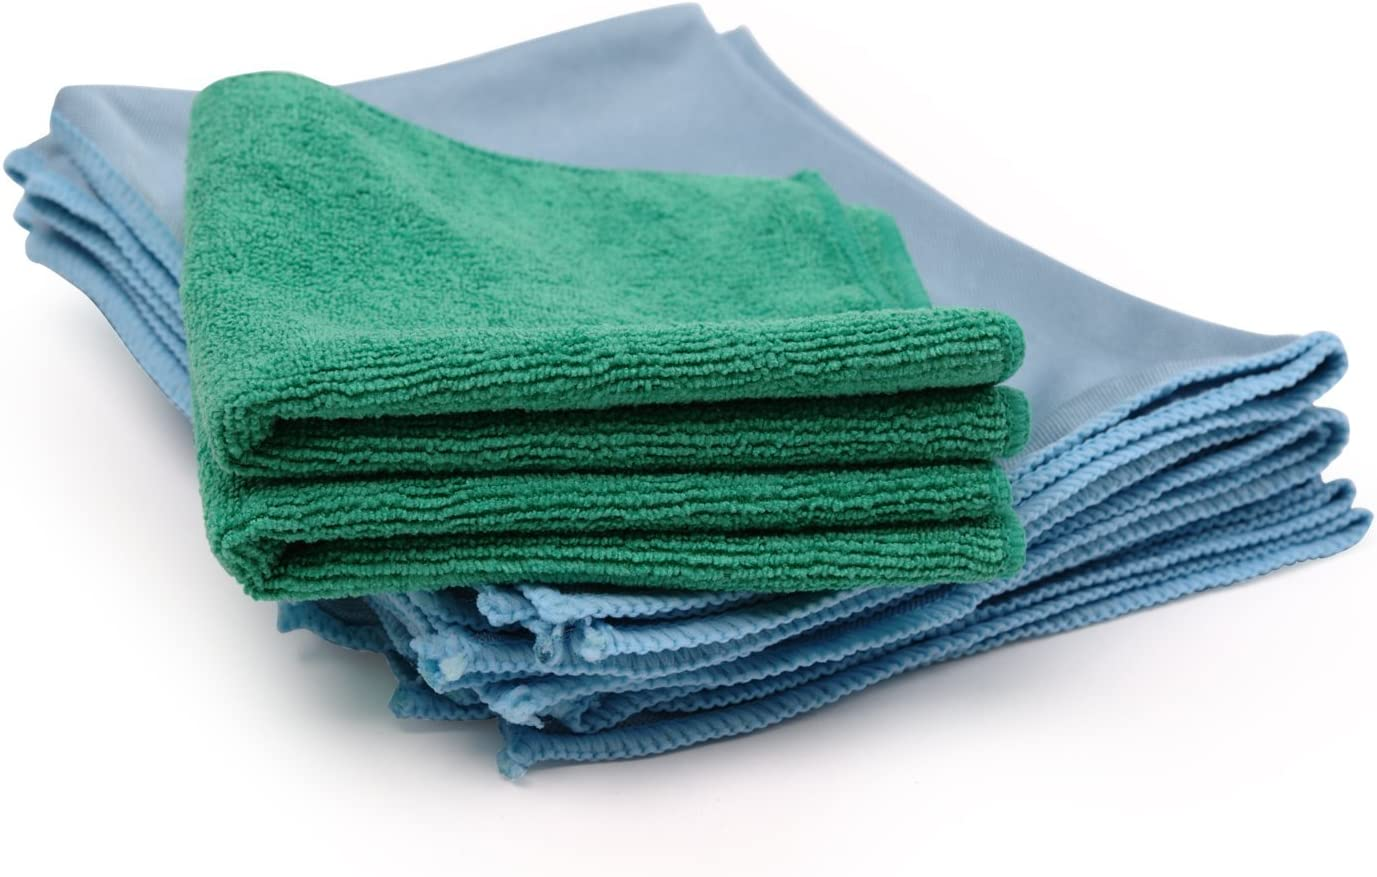 Microfiber Wholesale Windows Cleaning Cloths